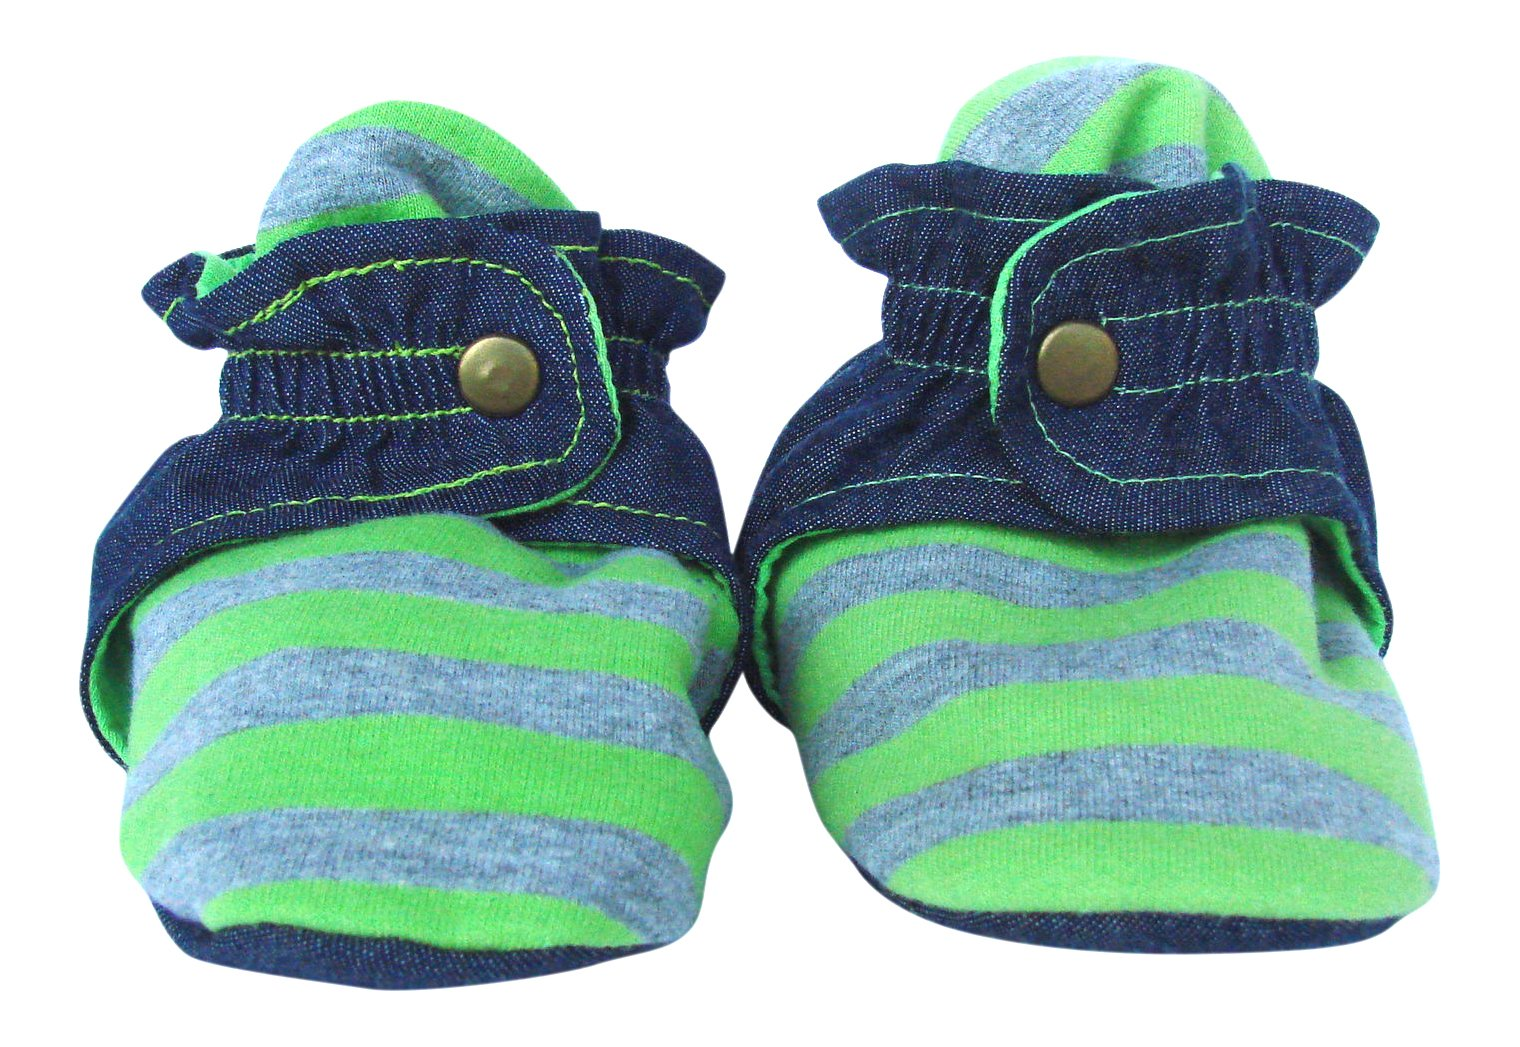 Trimfit Infant 1-Pack Stripes/Denim Booties with Clasp,Grey/Denim/Green,Large/12 Months